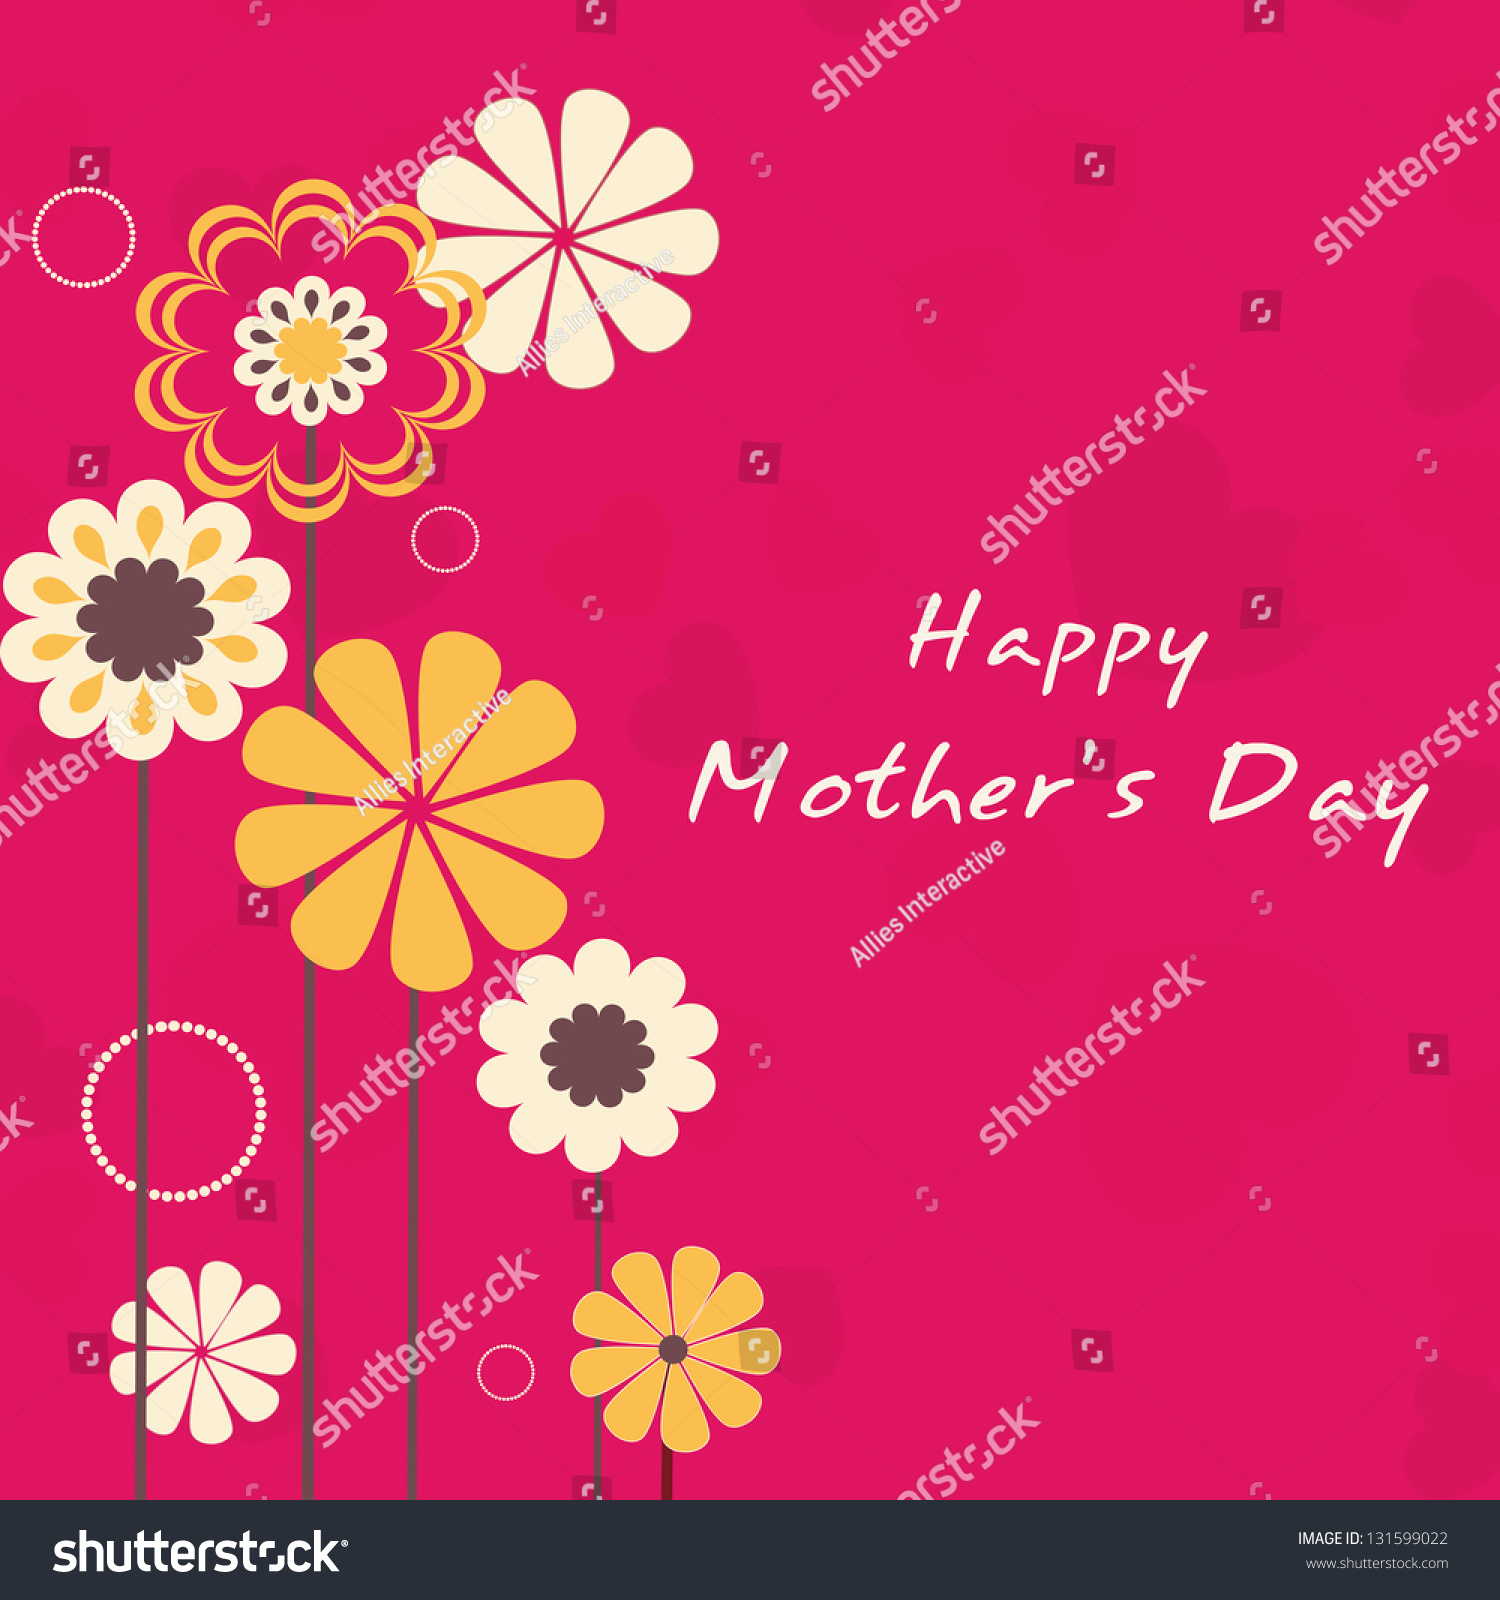 Creative Floral Flyer Of Happy Mothers Day Template For: Beautiful Floral Decorated Background, Banner Or Flyer For